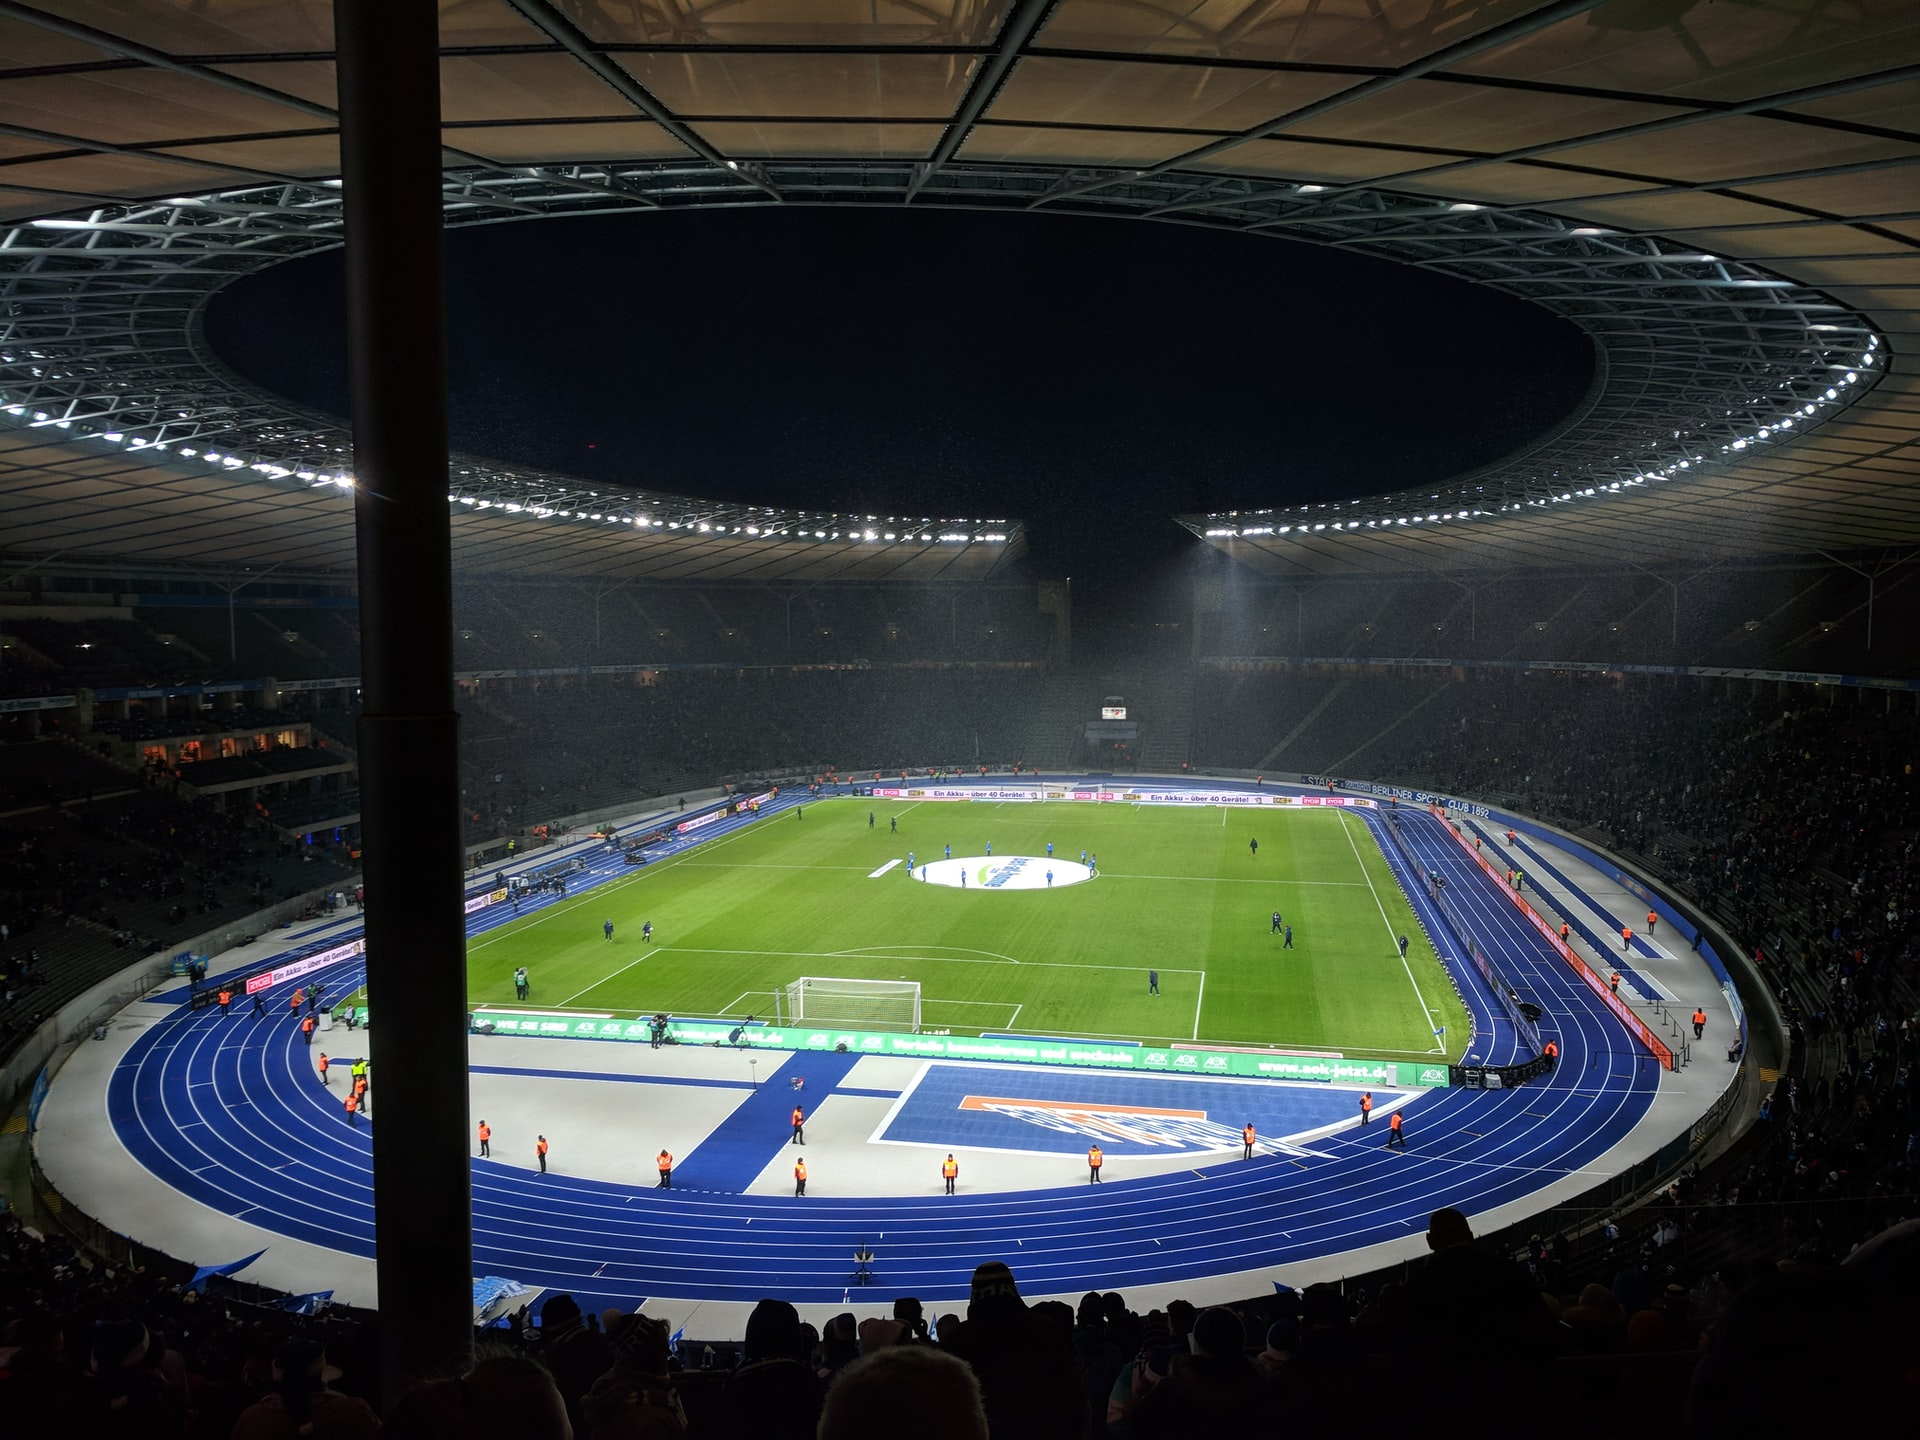 The Olympiastadion in Berlin, Germany